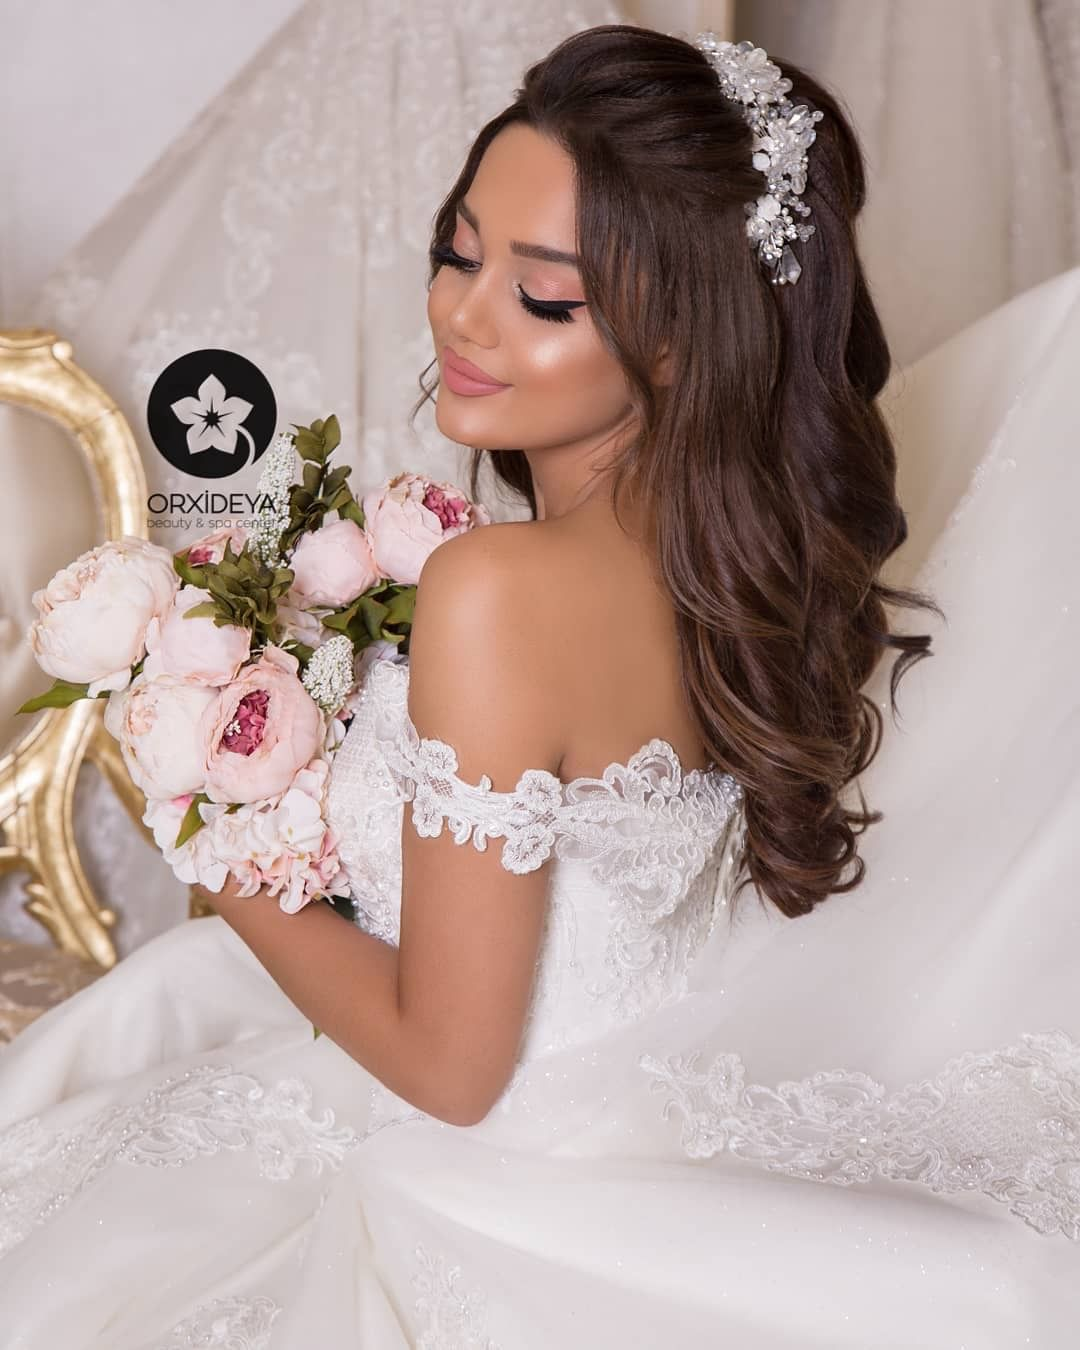 bridal shower | party themes in 2019 | wedding hairstyles